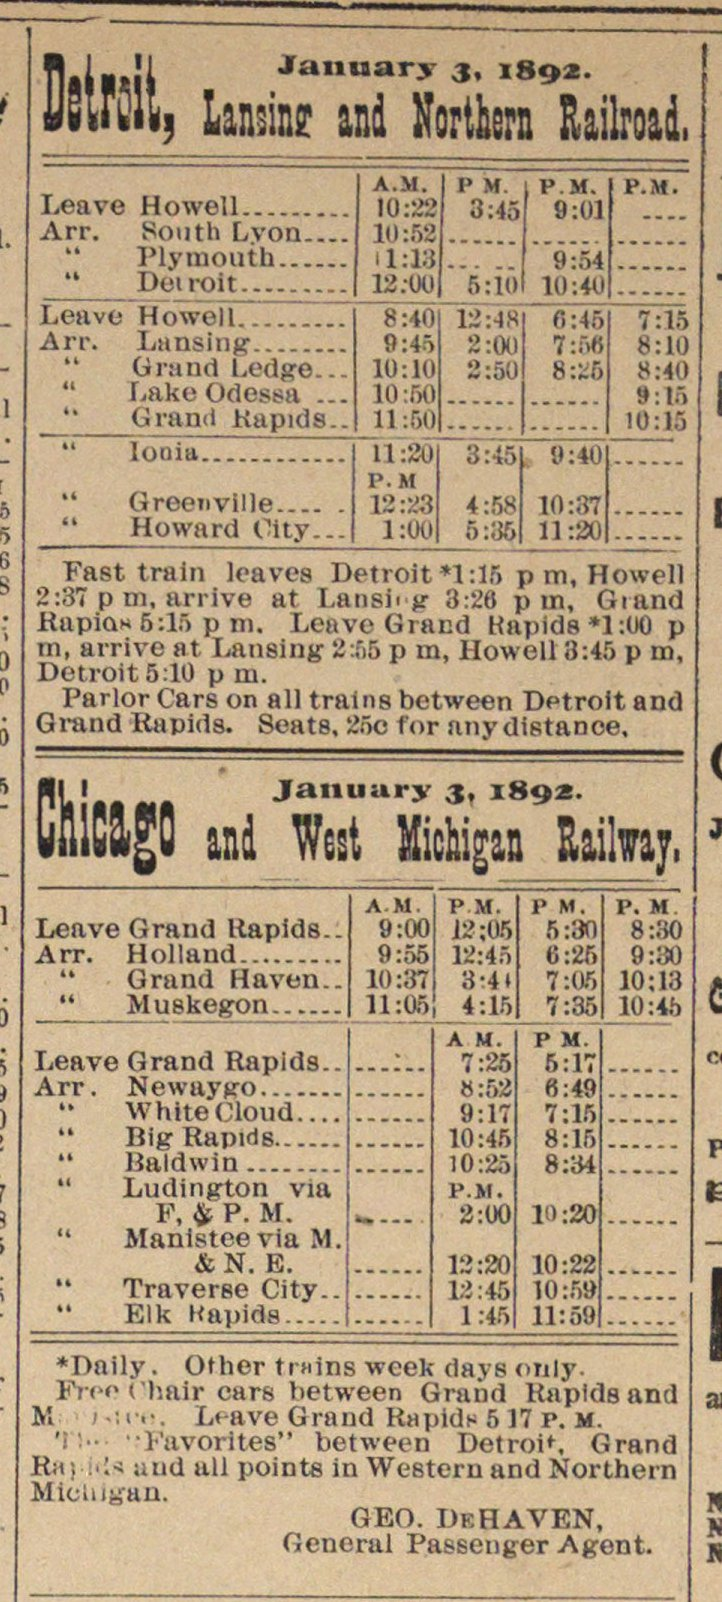 Detroit, January 3, 1892. Lansing And Northern Railroad image